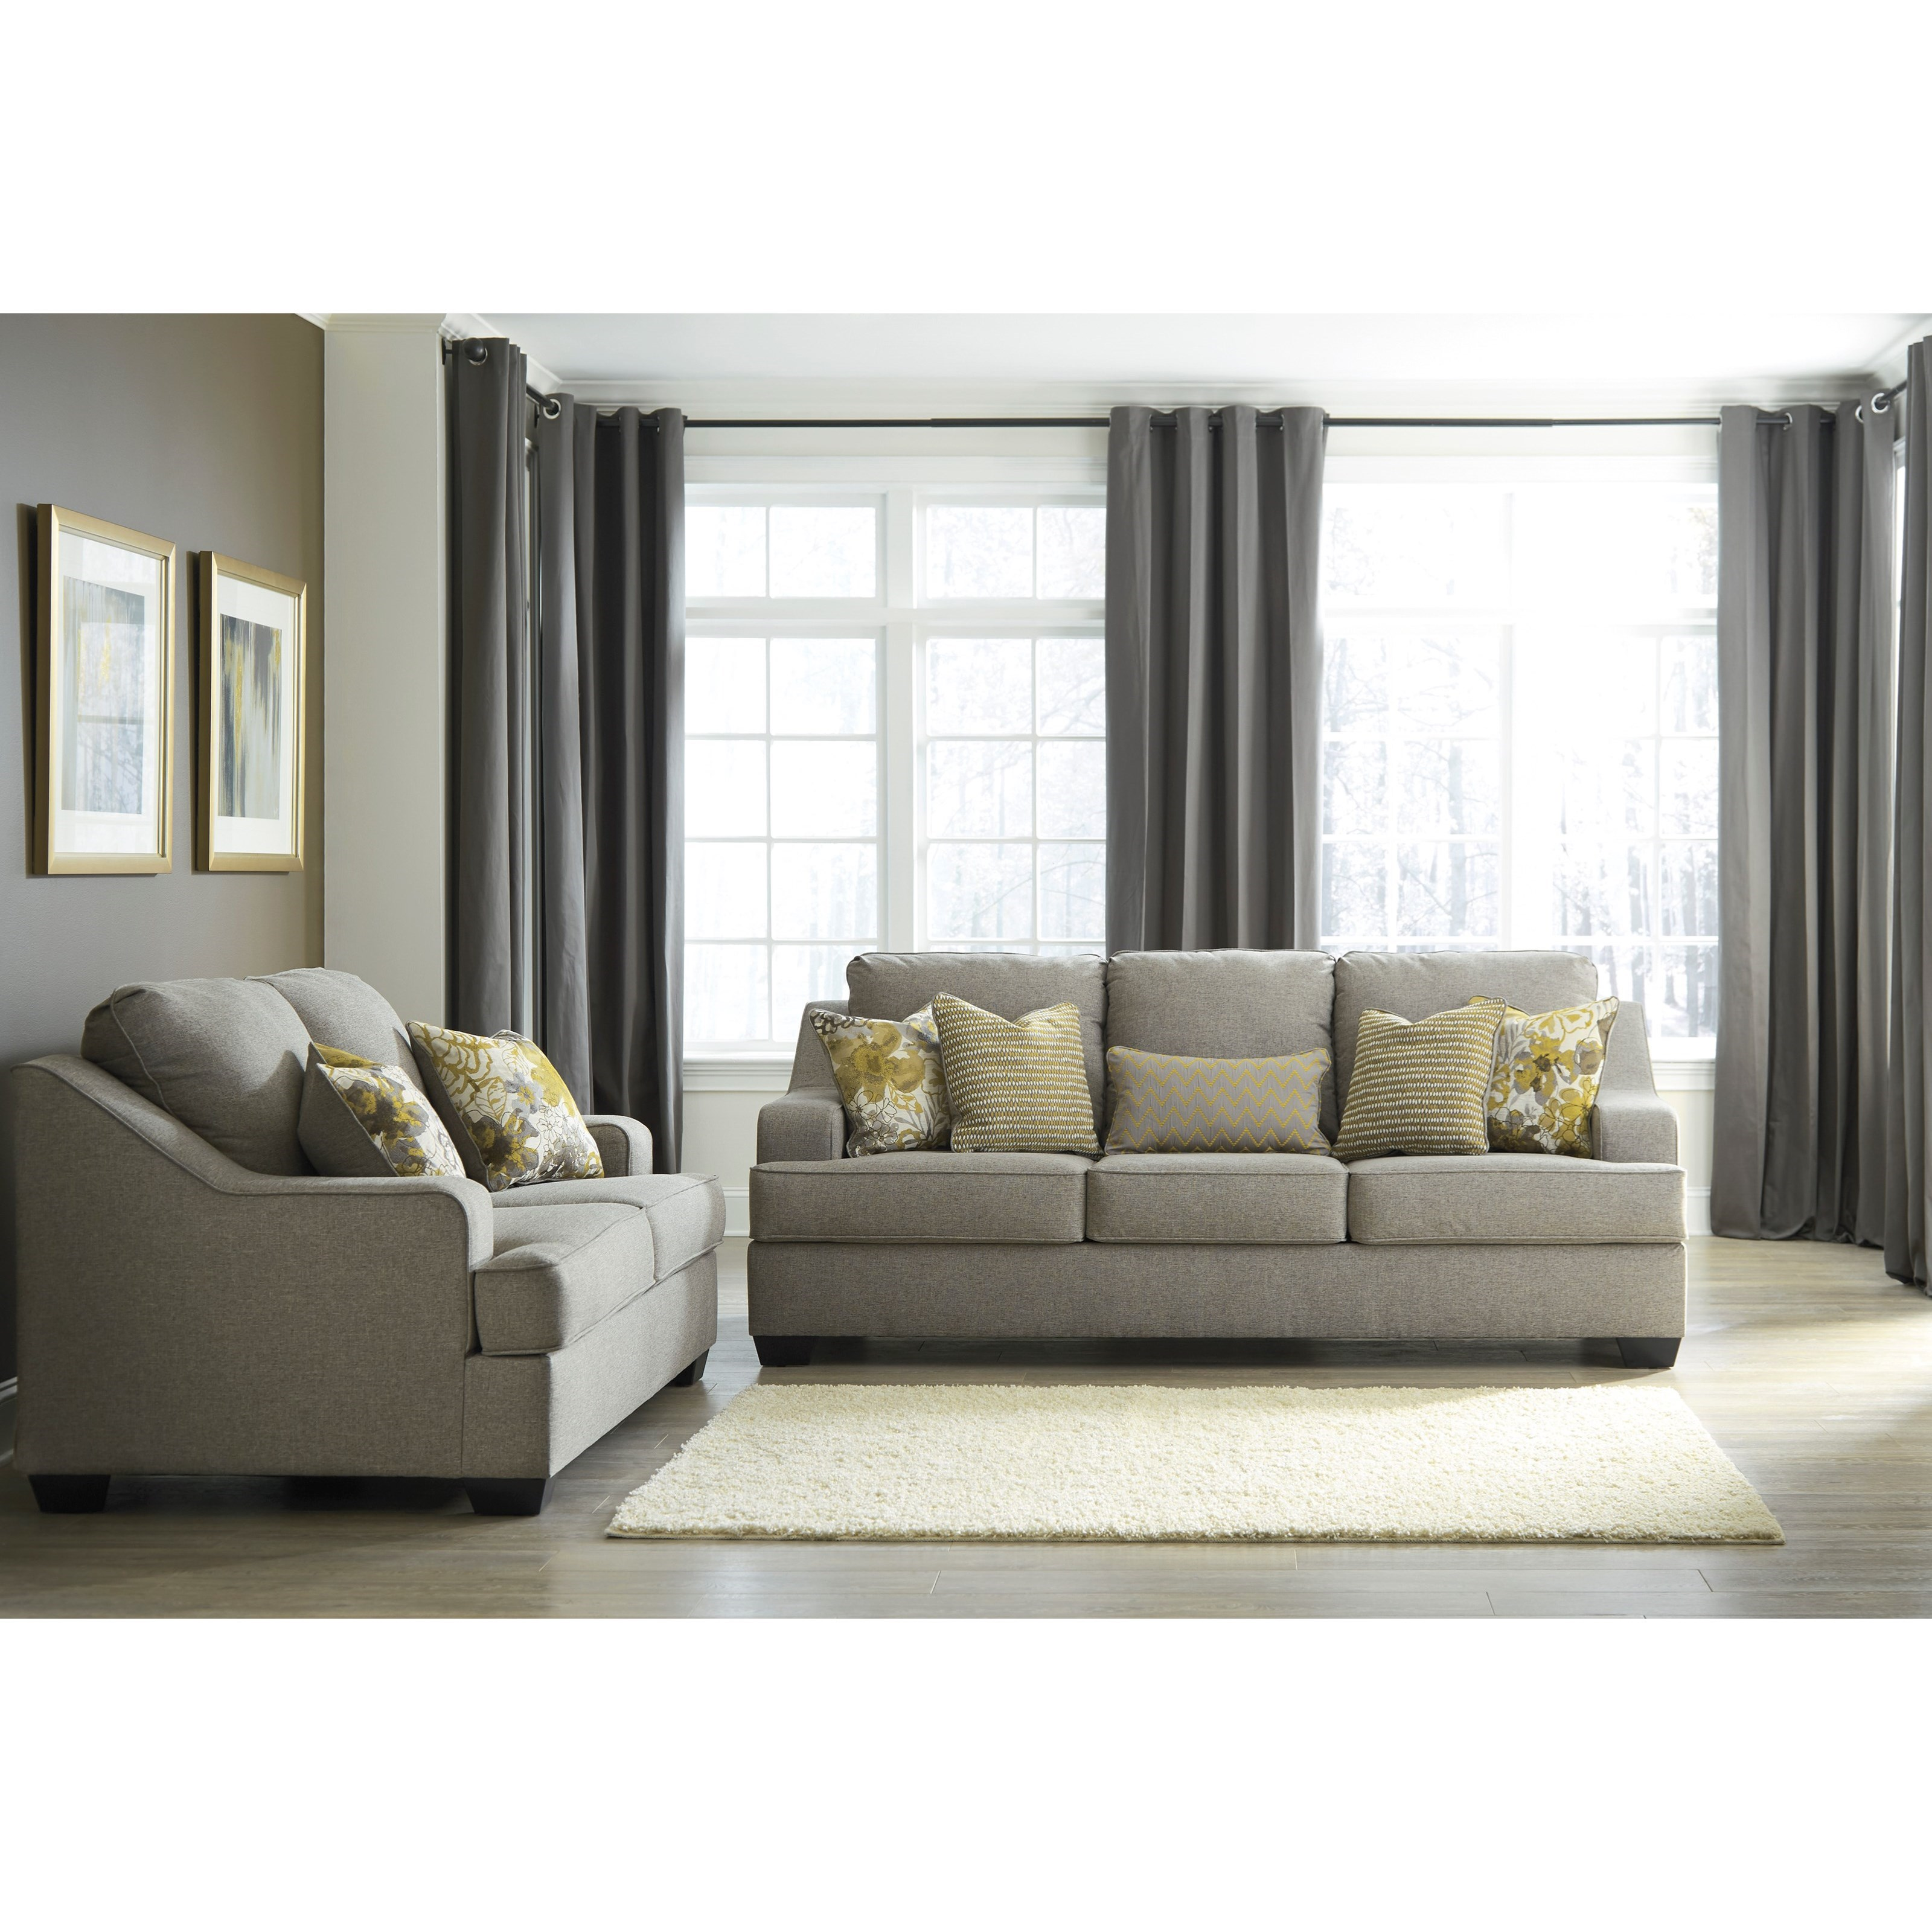 Mandee Stationary Living Room Group by Benchcraft at Household Furniture